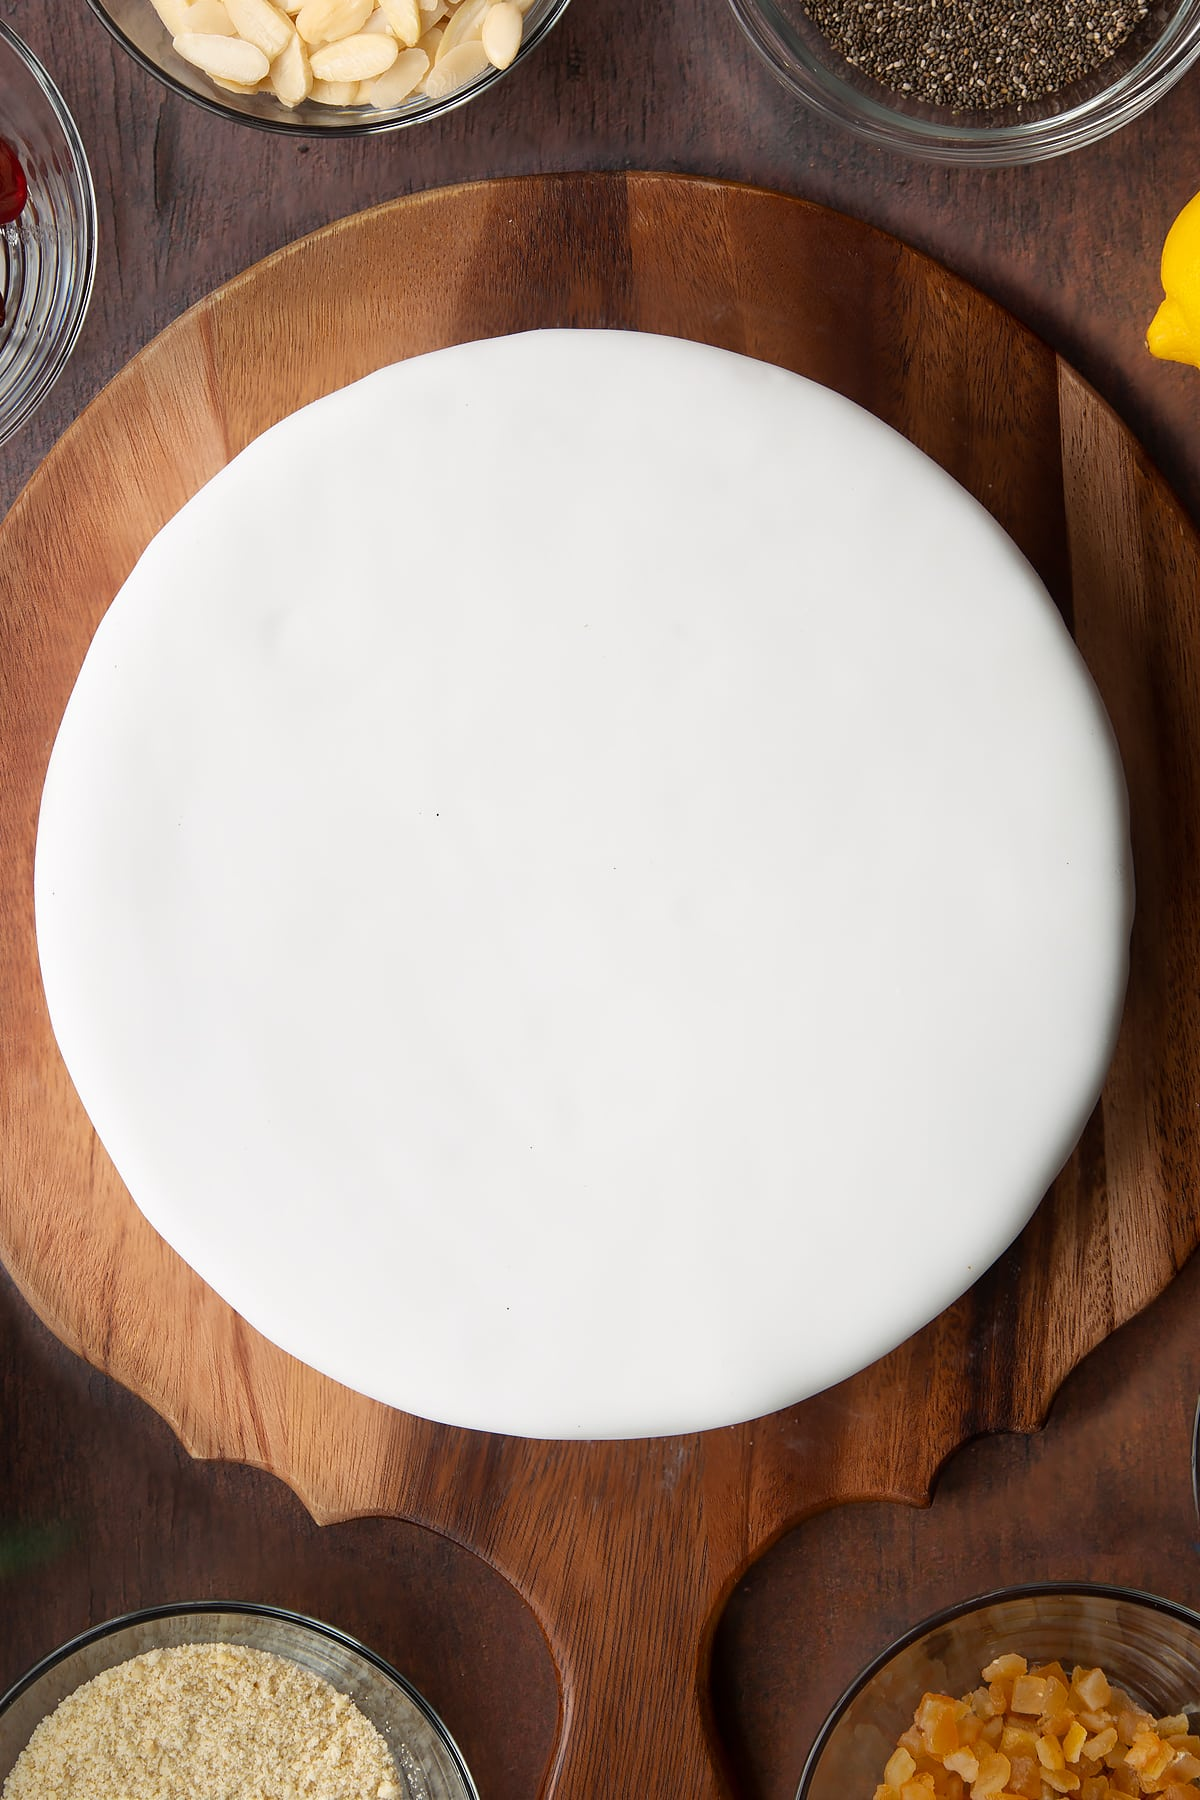 Vegan Christmas cake, topped with a disc of marzipan and covered with white sugar paste on a wooden board.